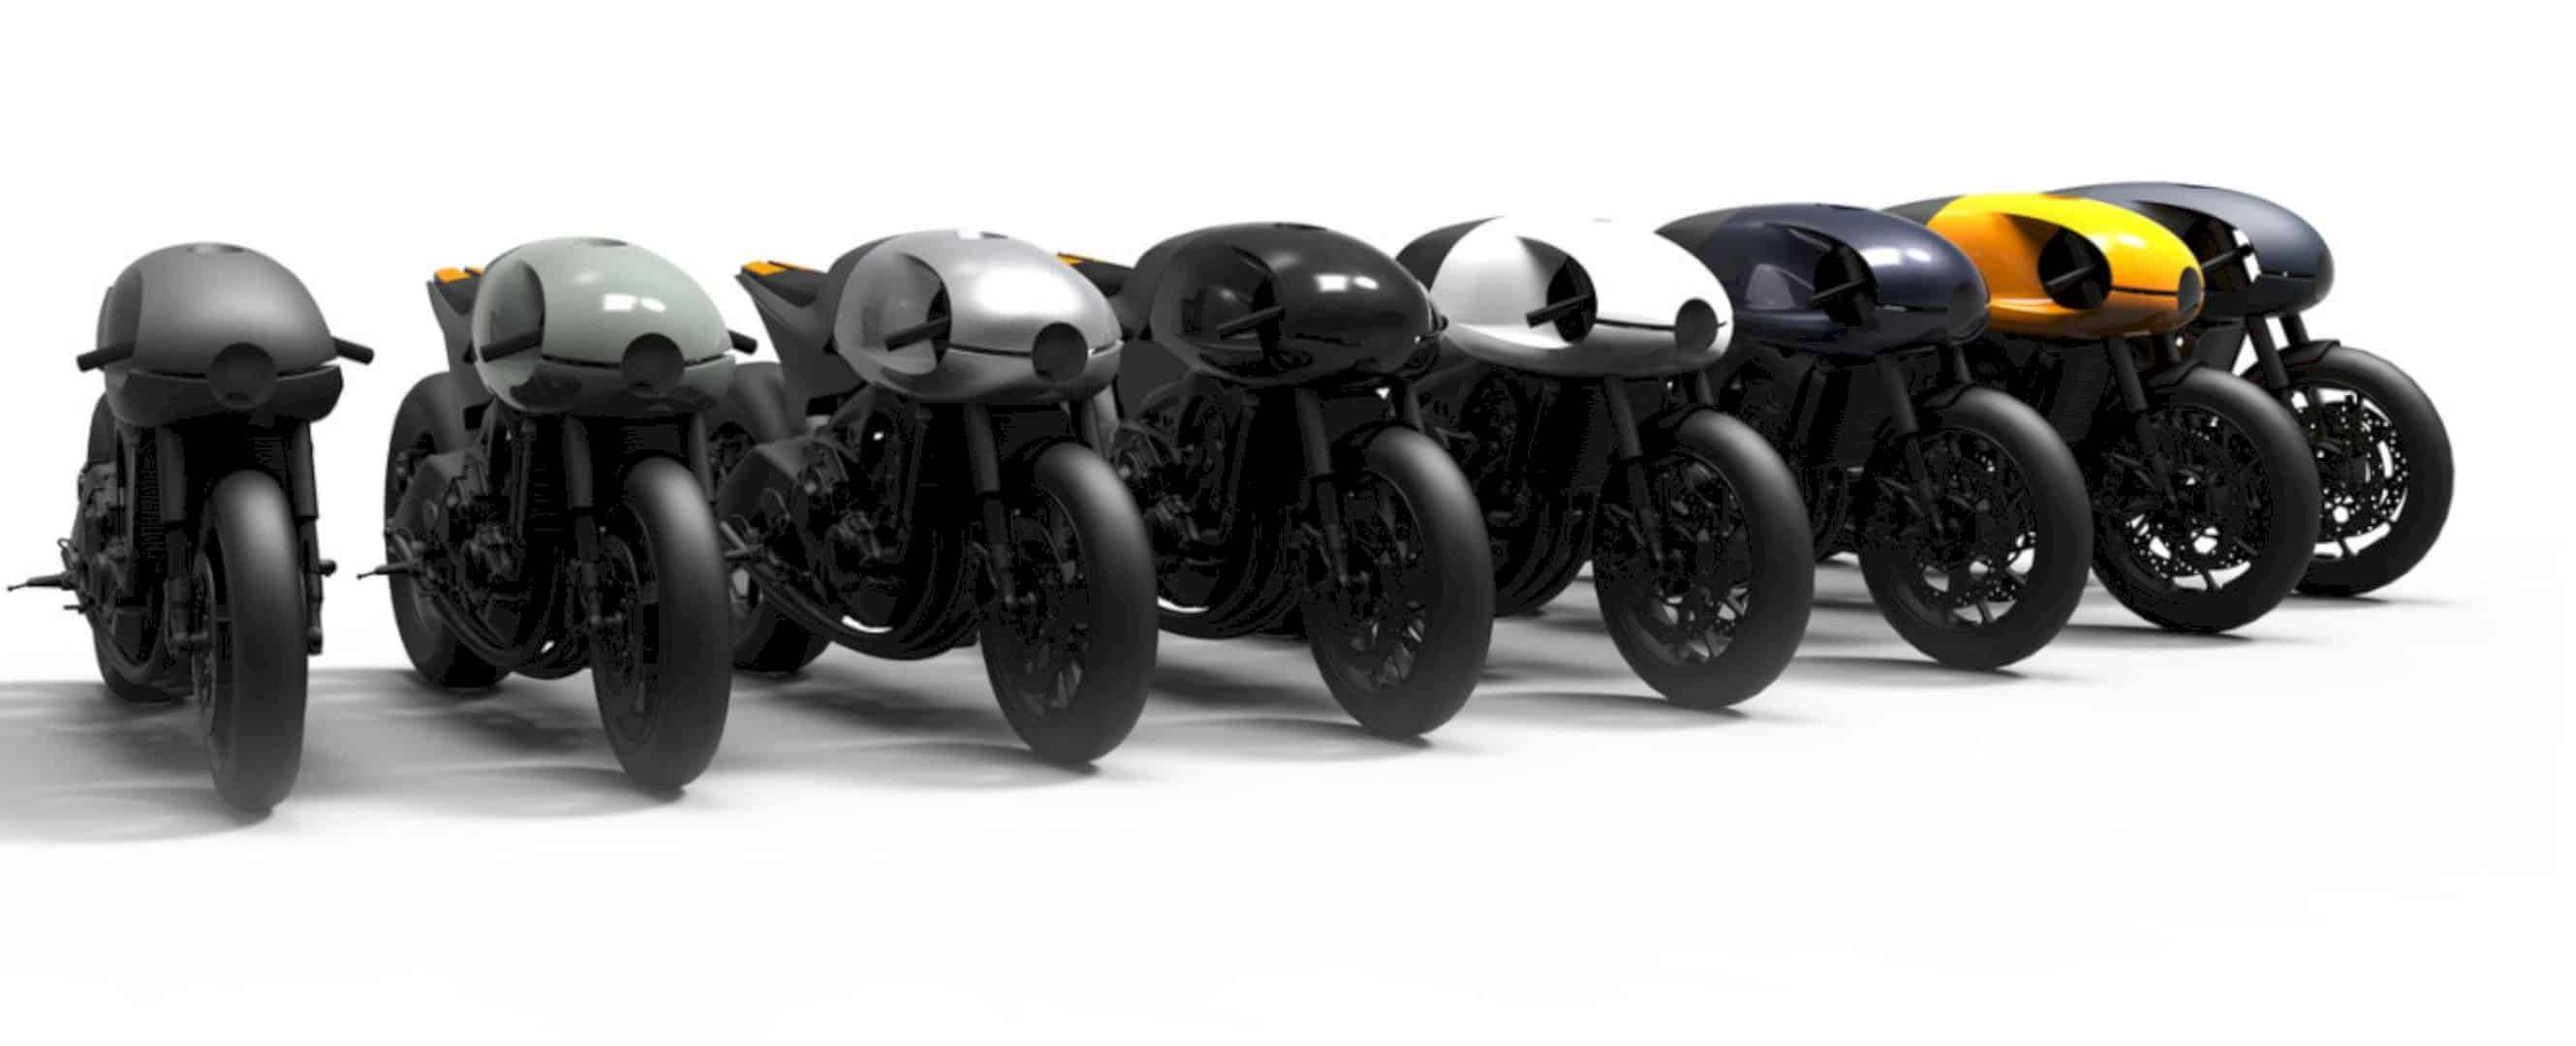 The Type 11 Concept By Auto Fabrica 2